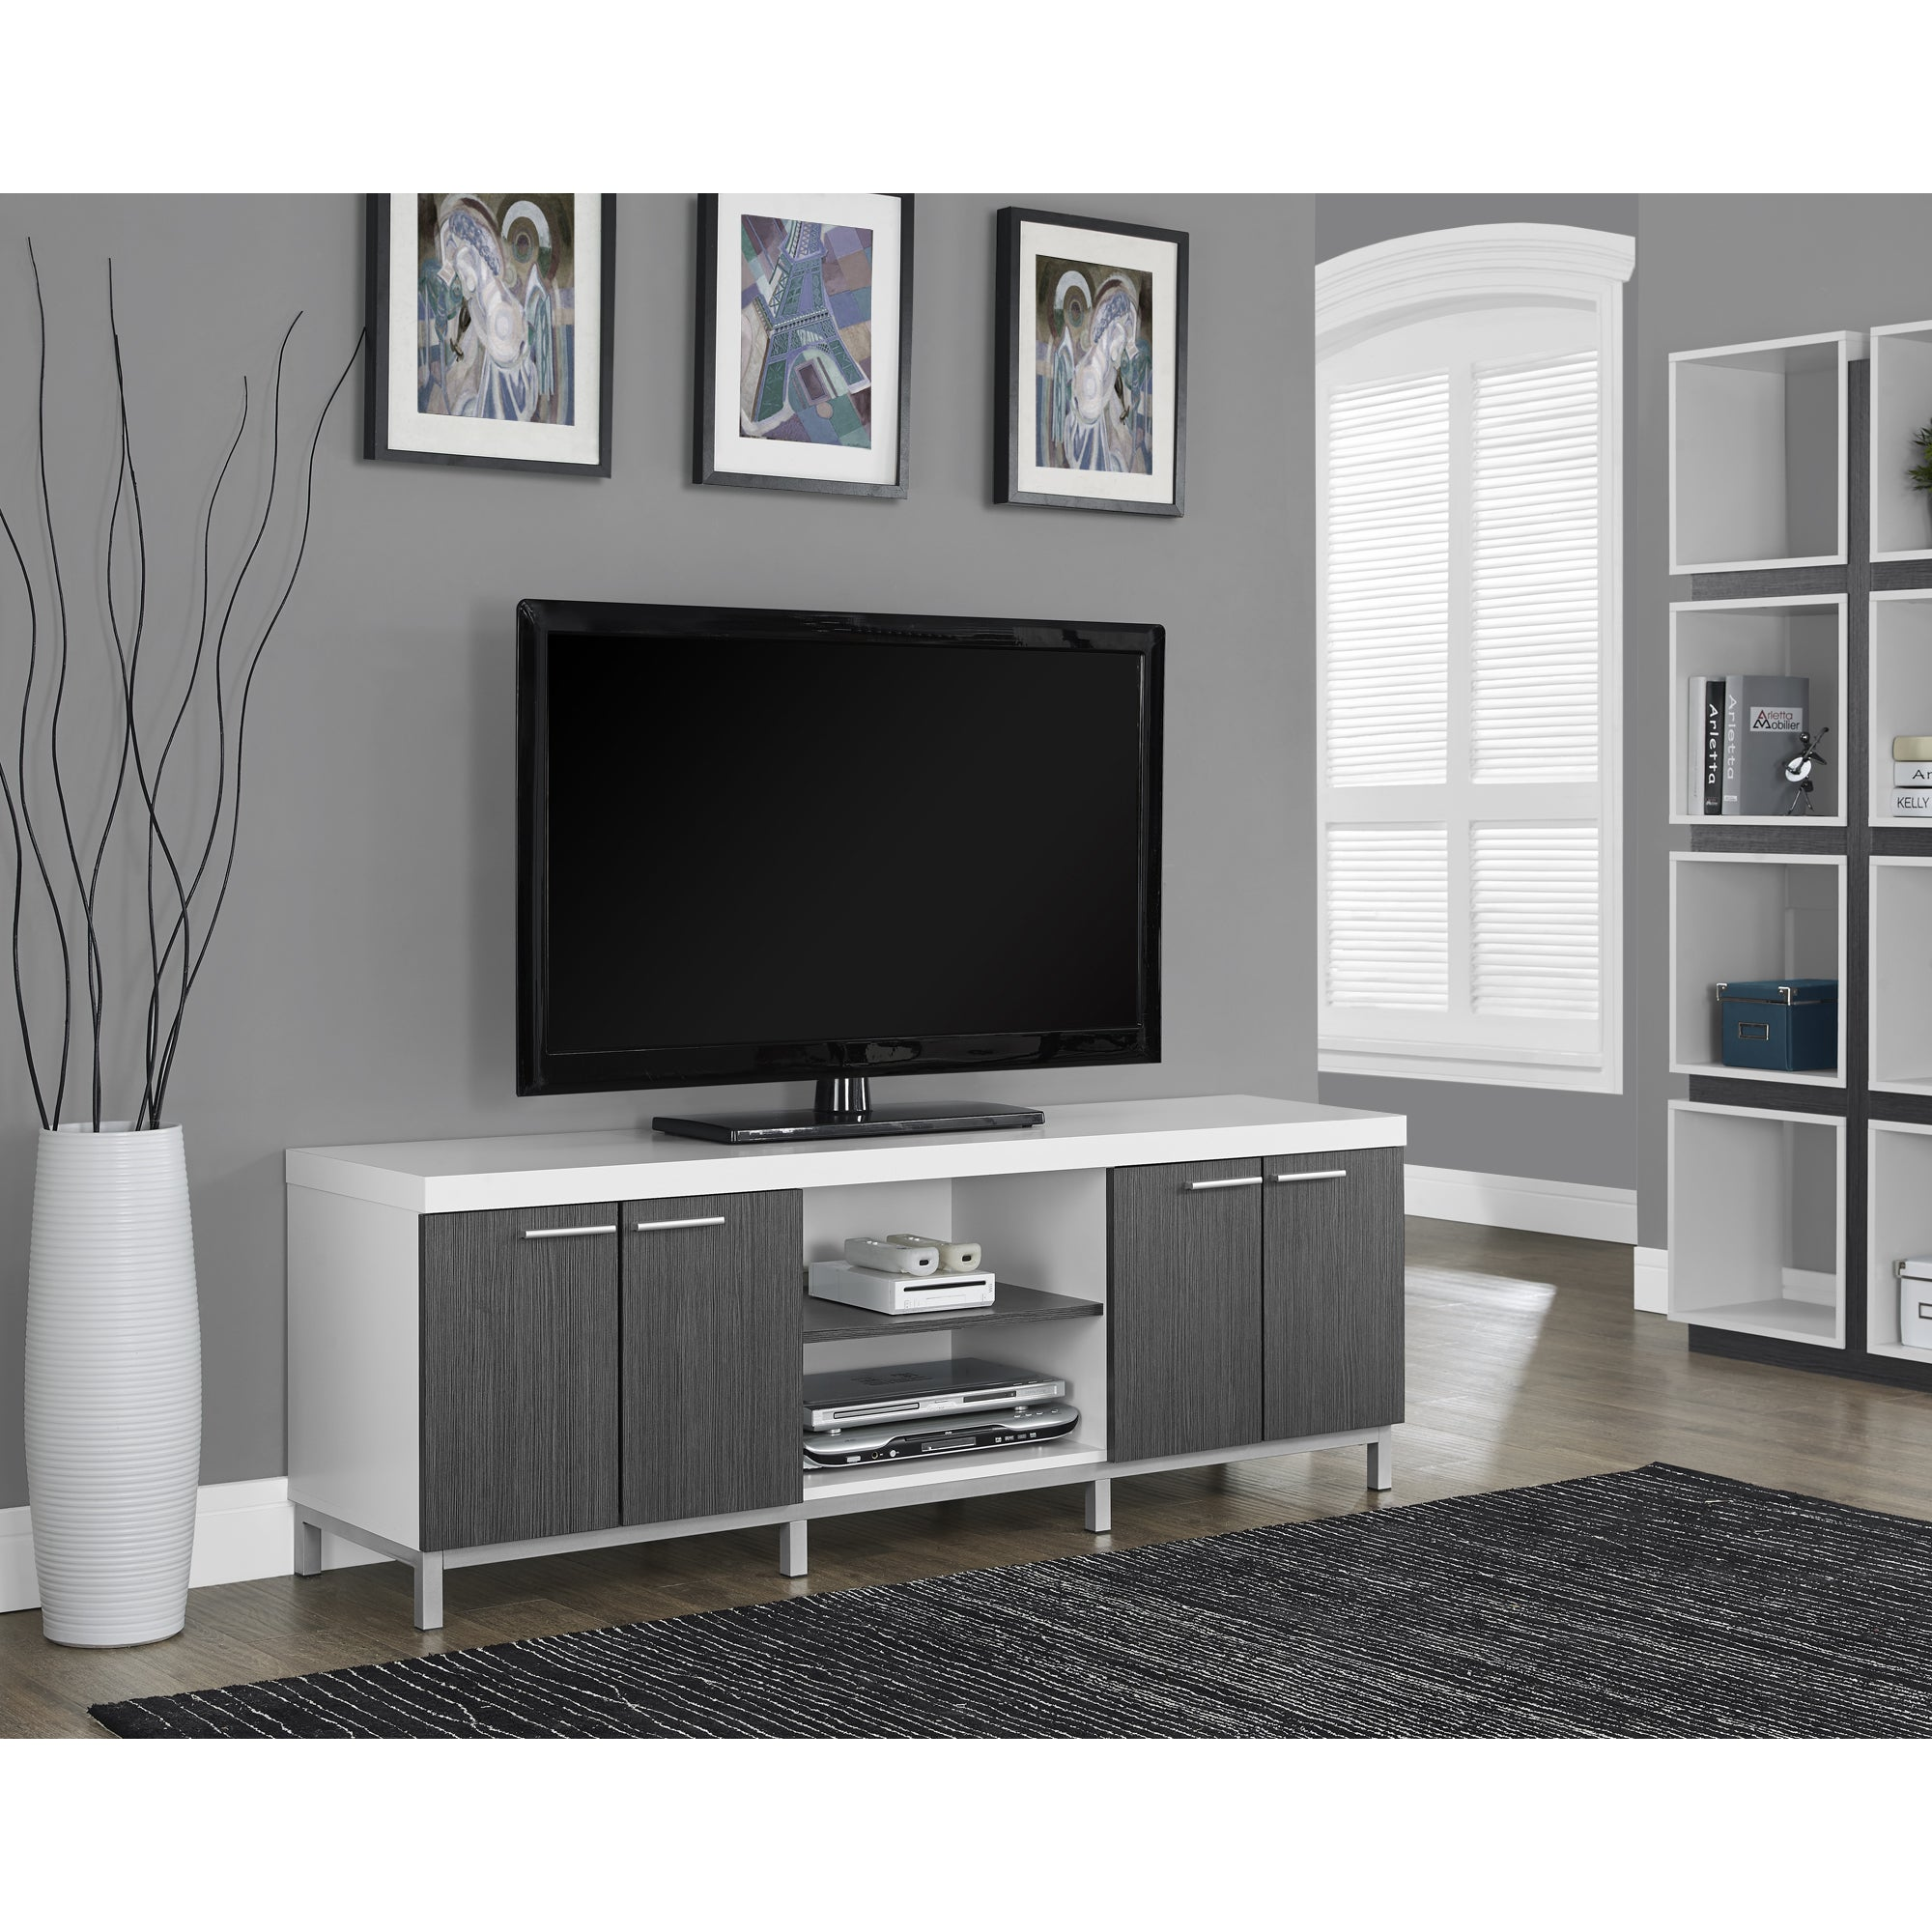 Shop White and Grey Hollow core 60 inch TV